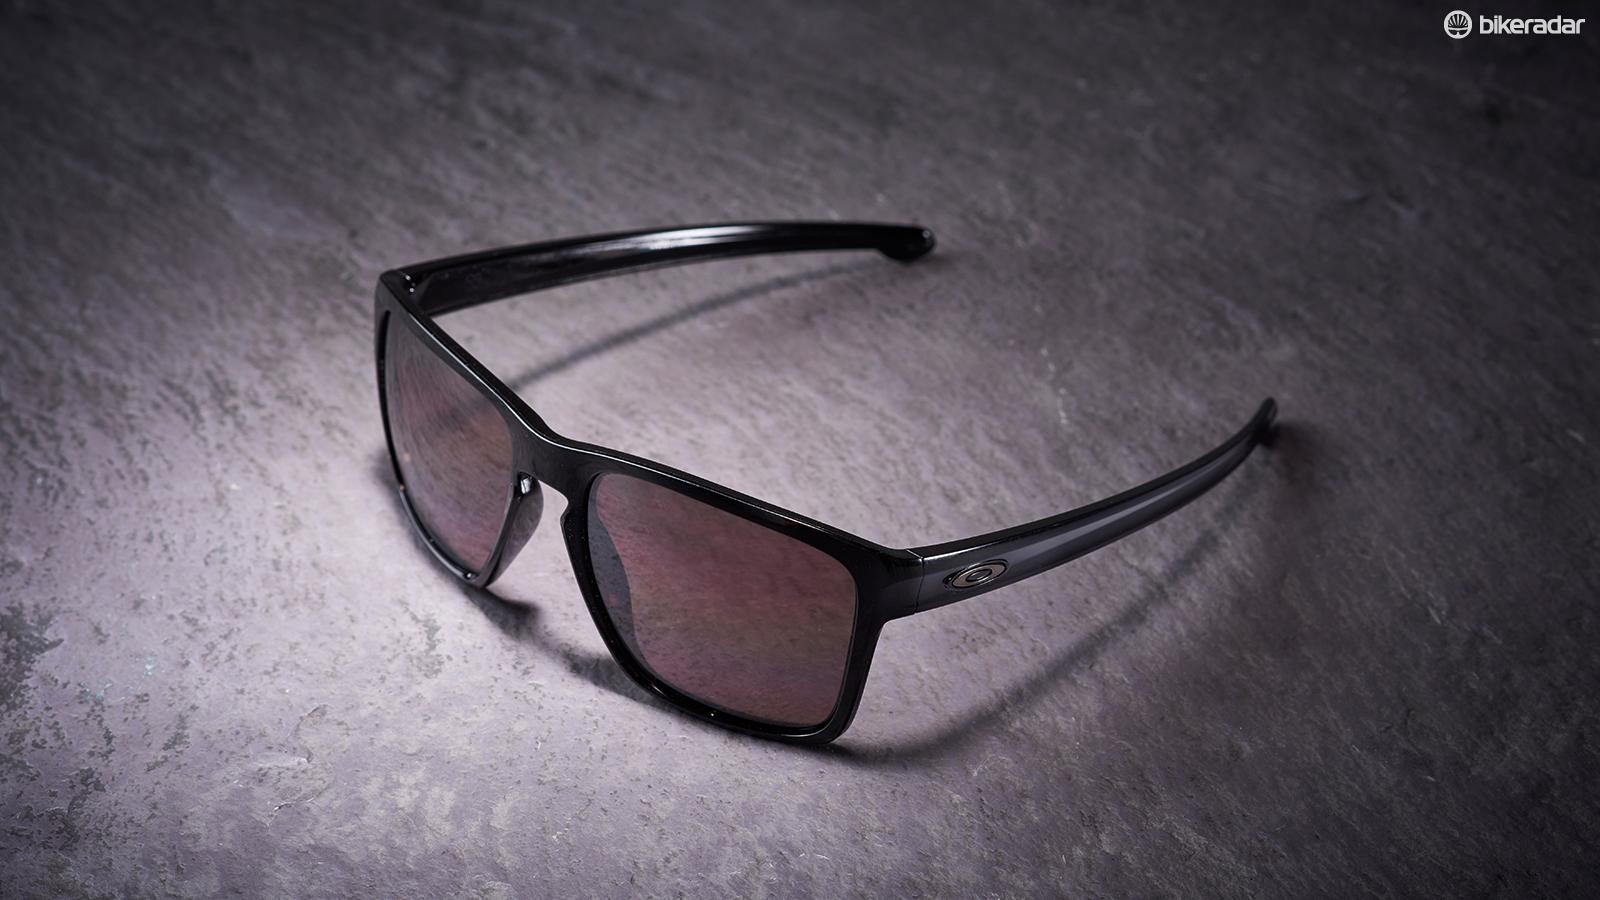 The oversized frame and deep lenses on these Oakleys work brilliantly